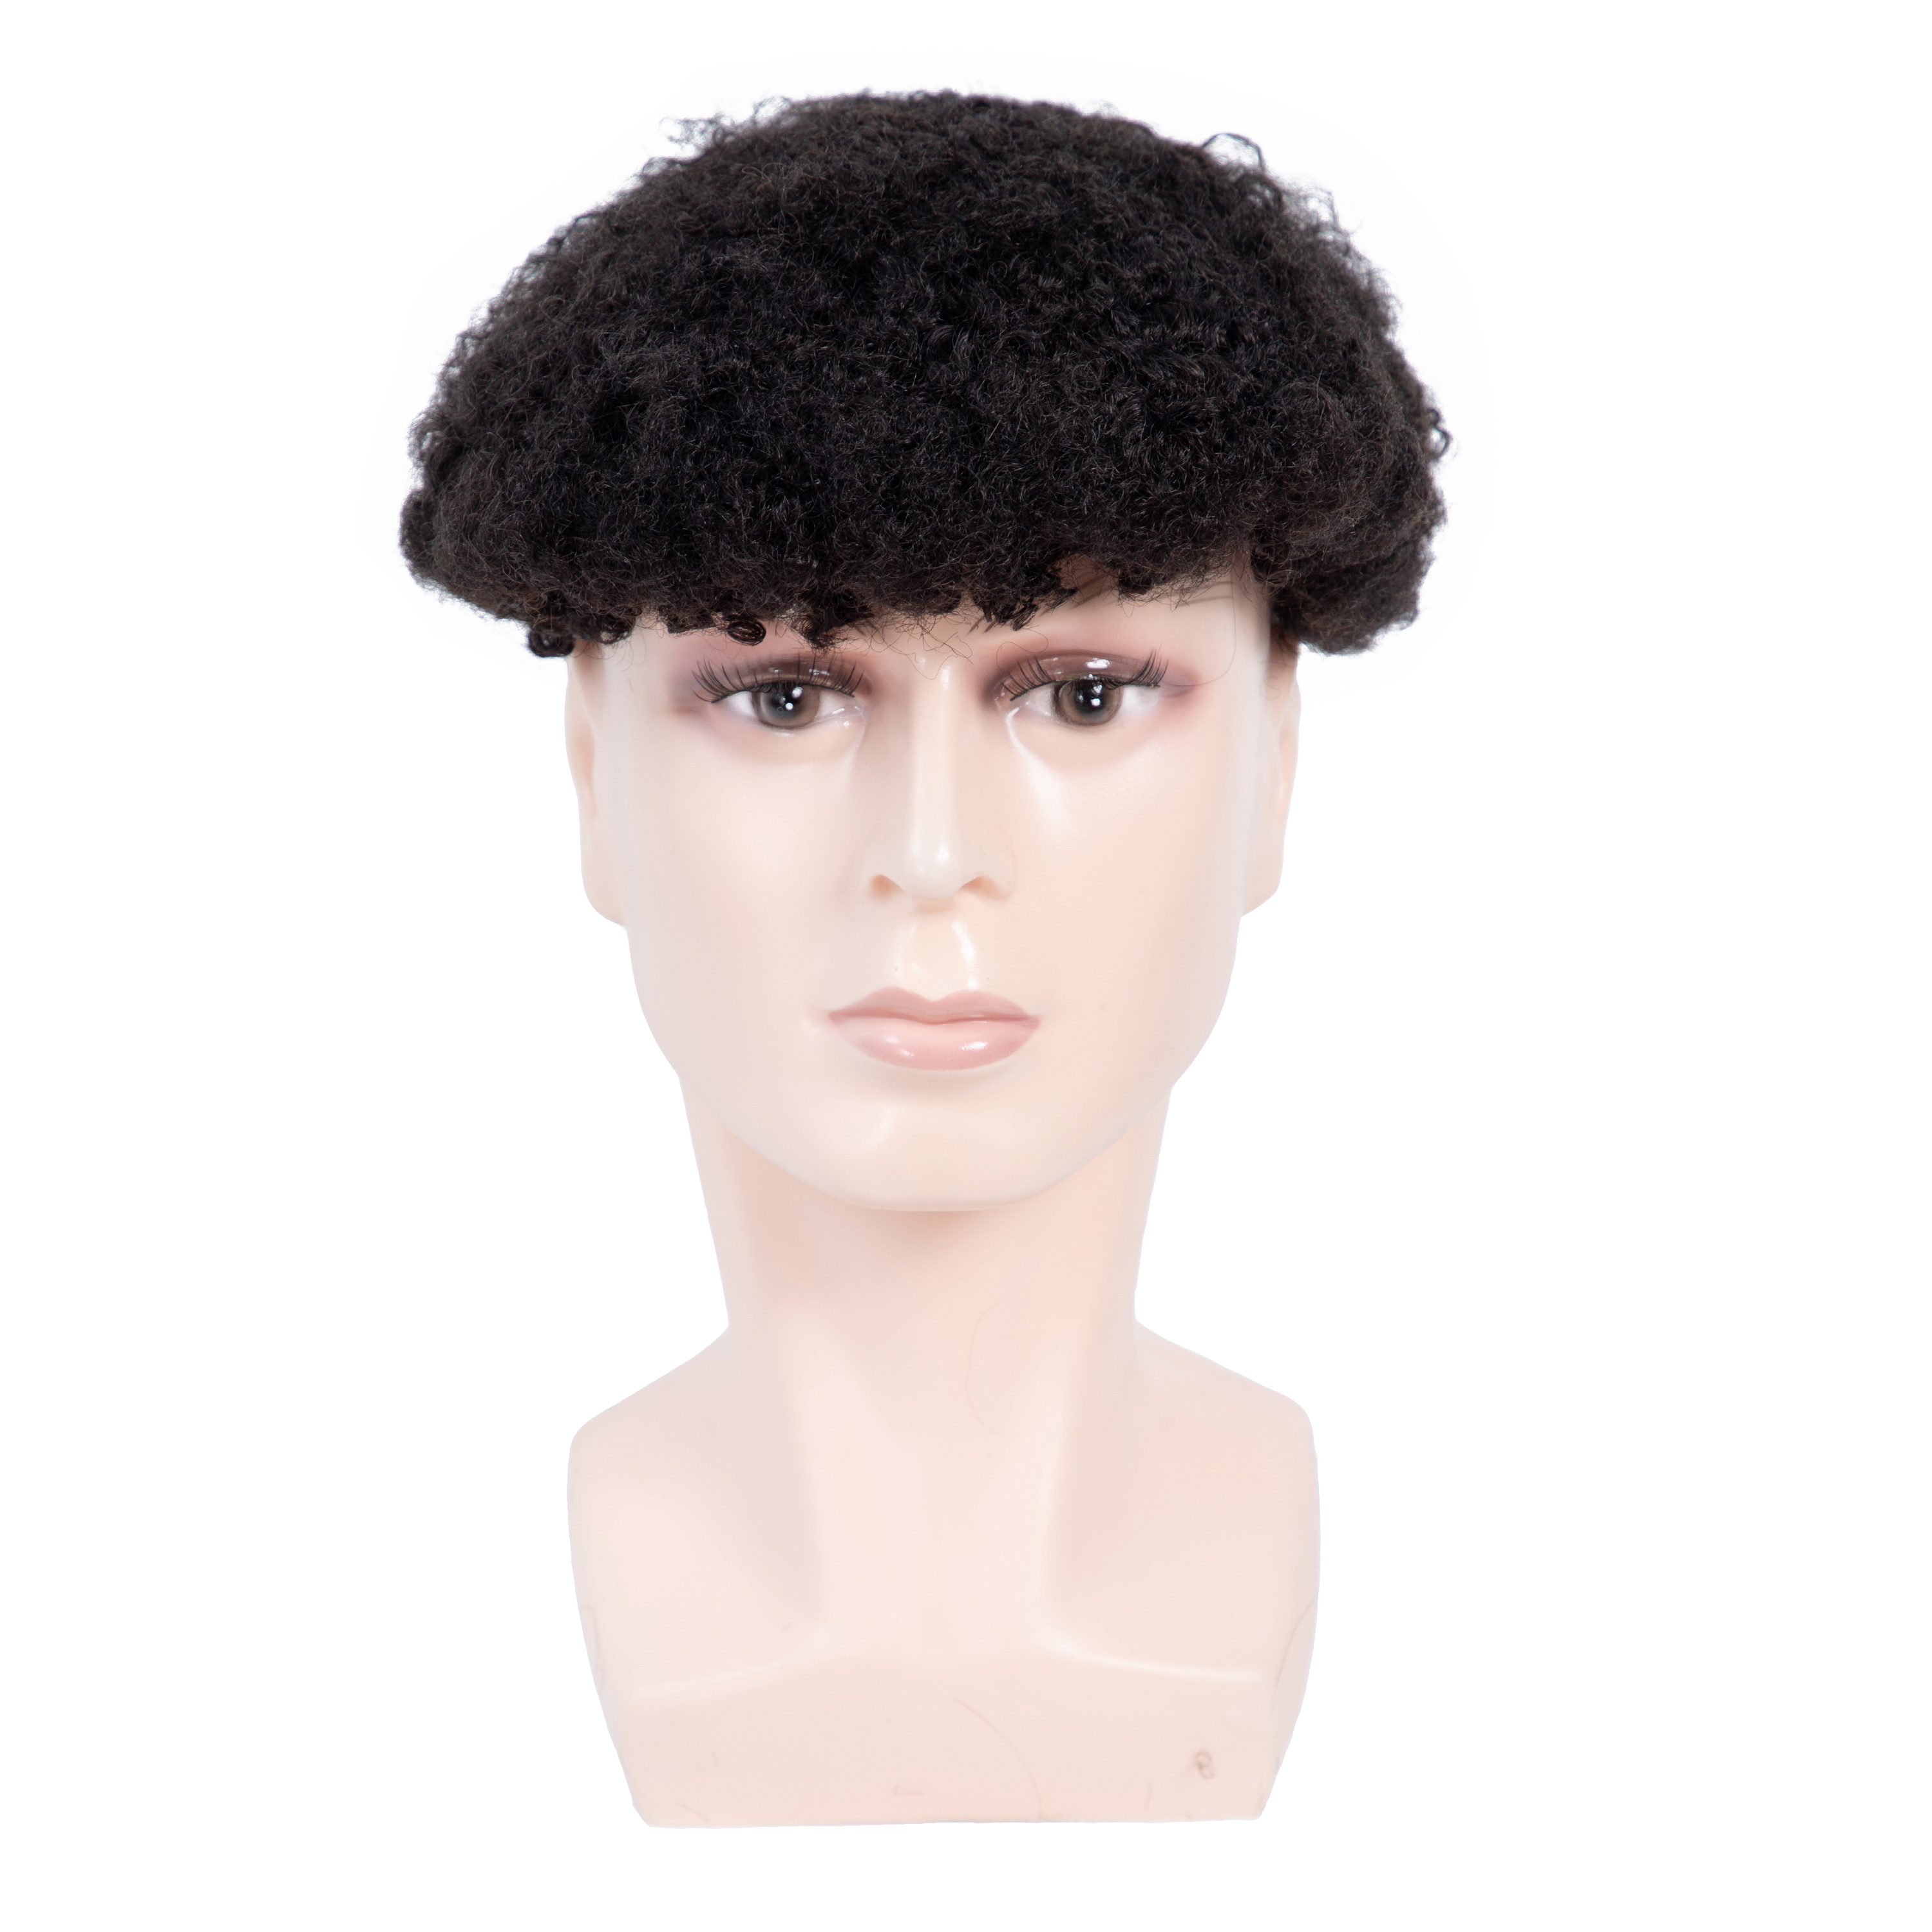 MRSHAIR Remy Human Hair Mens Toupee Mono Toupee Natural Hairline Replacement Systems Hairpiece